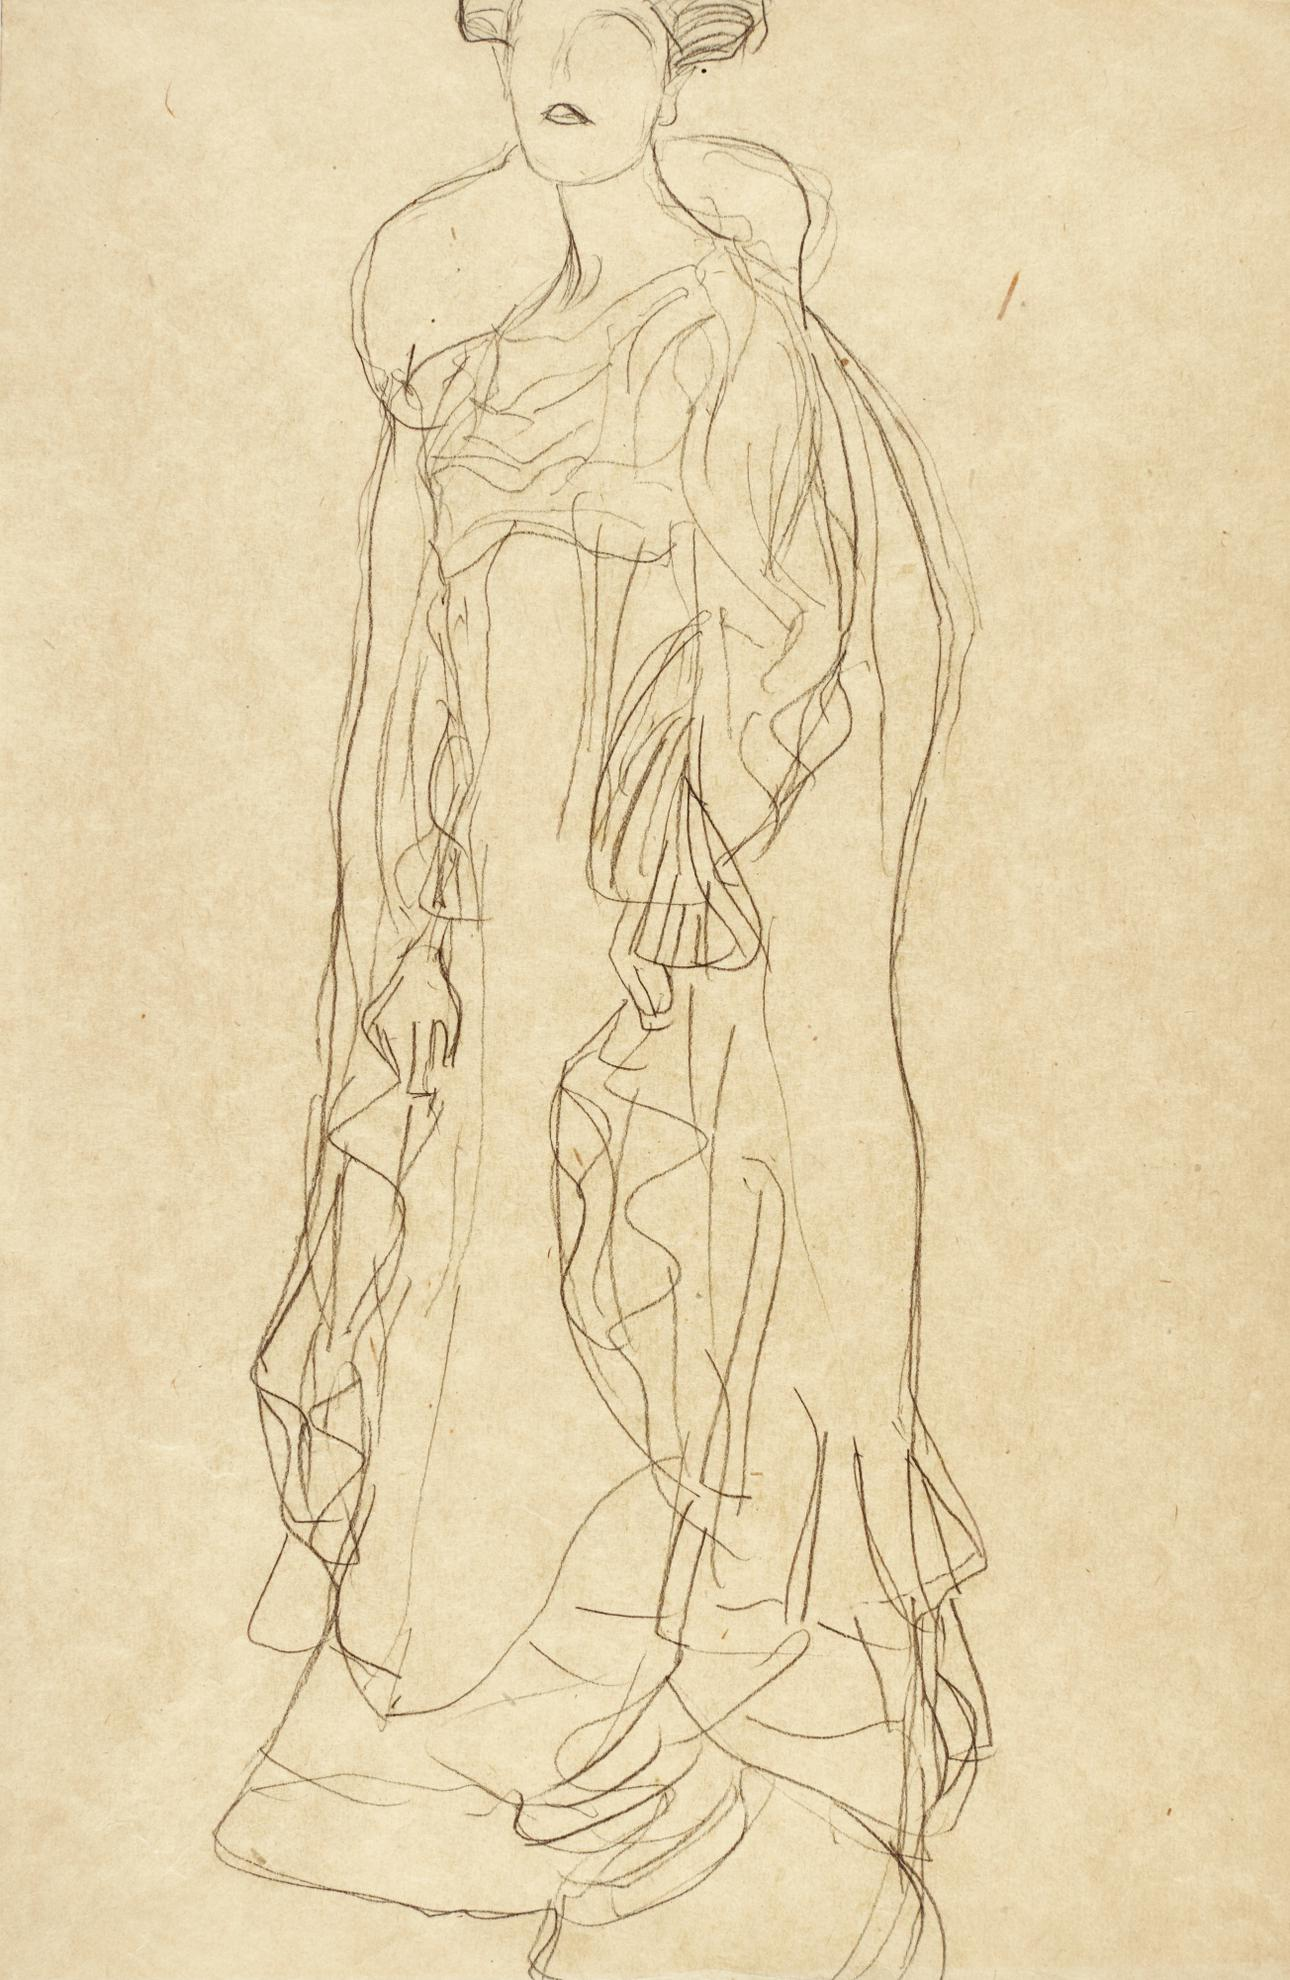 Gustav Klimt-Studie Fur Das Bildnis Adele Bloch Bauer I, Stehend Nach Links Im Dreiviertelprofil (Study For Portrait Of Adele Bloch Bauer I, Standing To The Left In Three-Quarters Profile)-1904